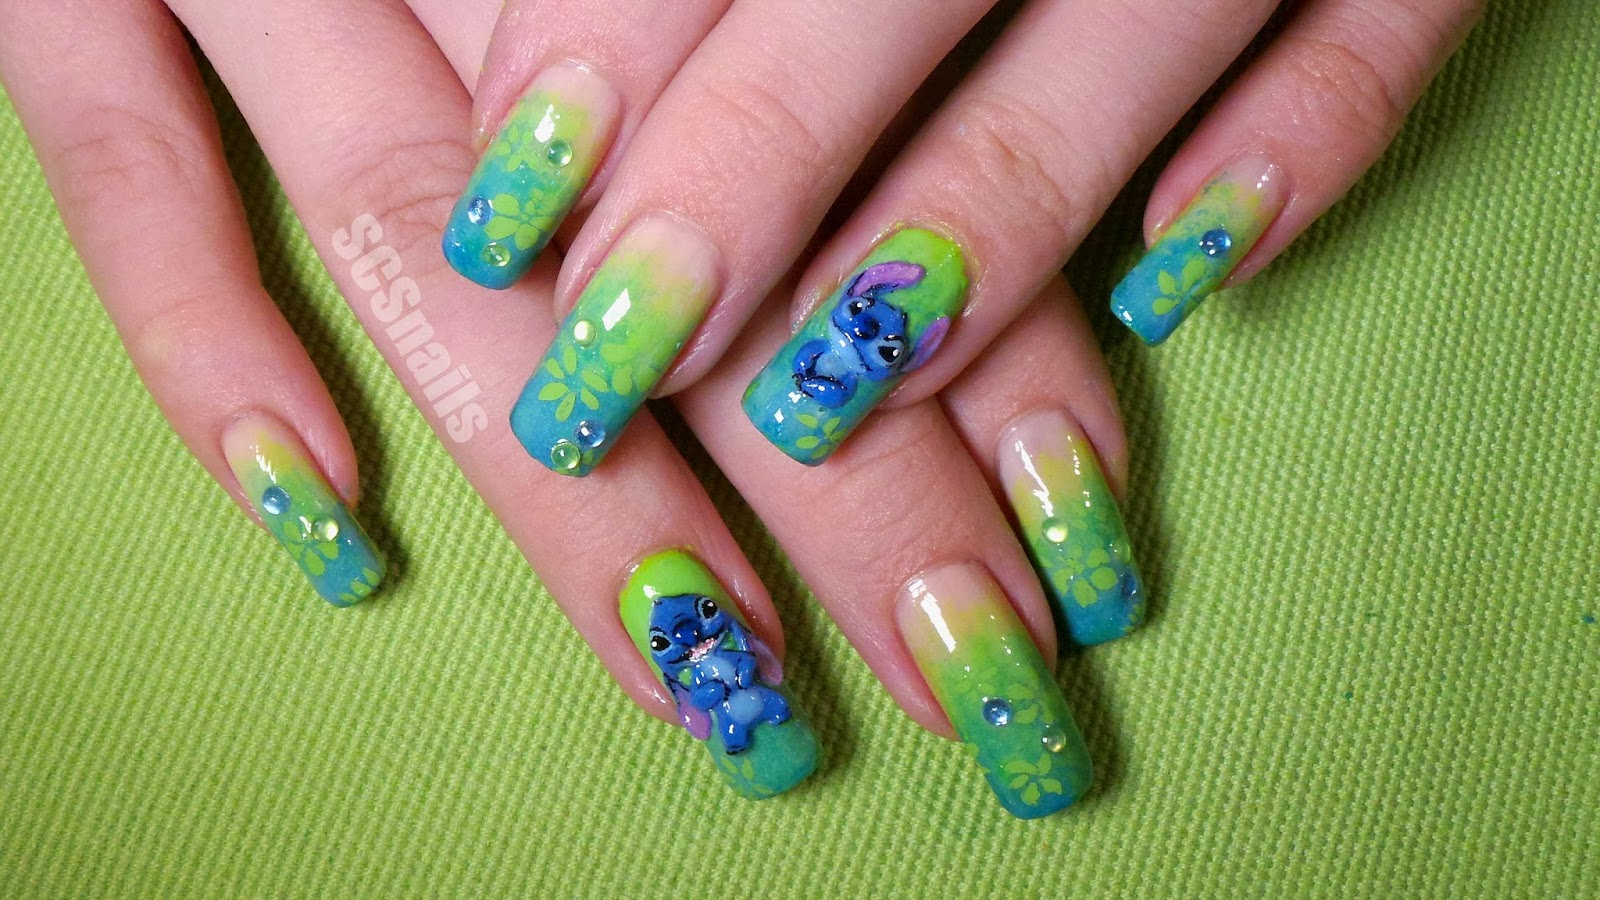 SCS nails: Stitch nail art